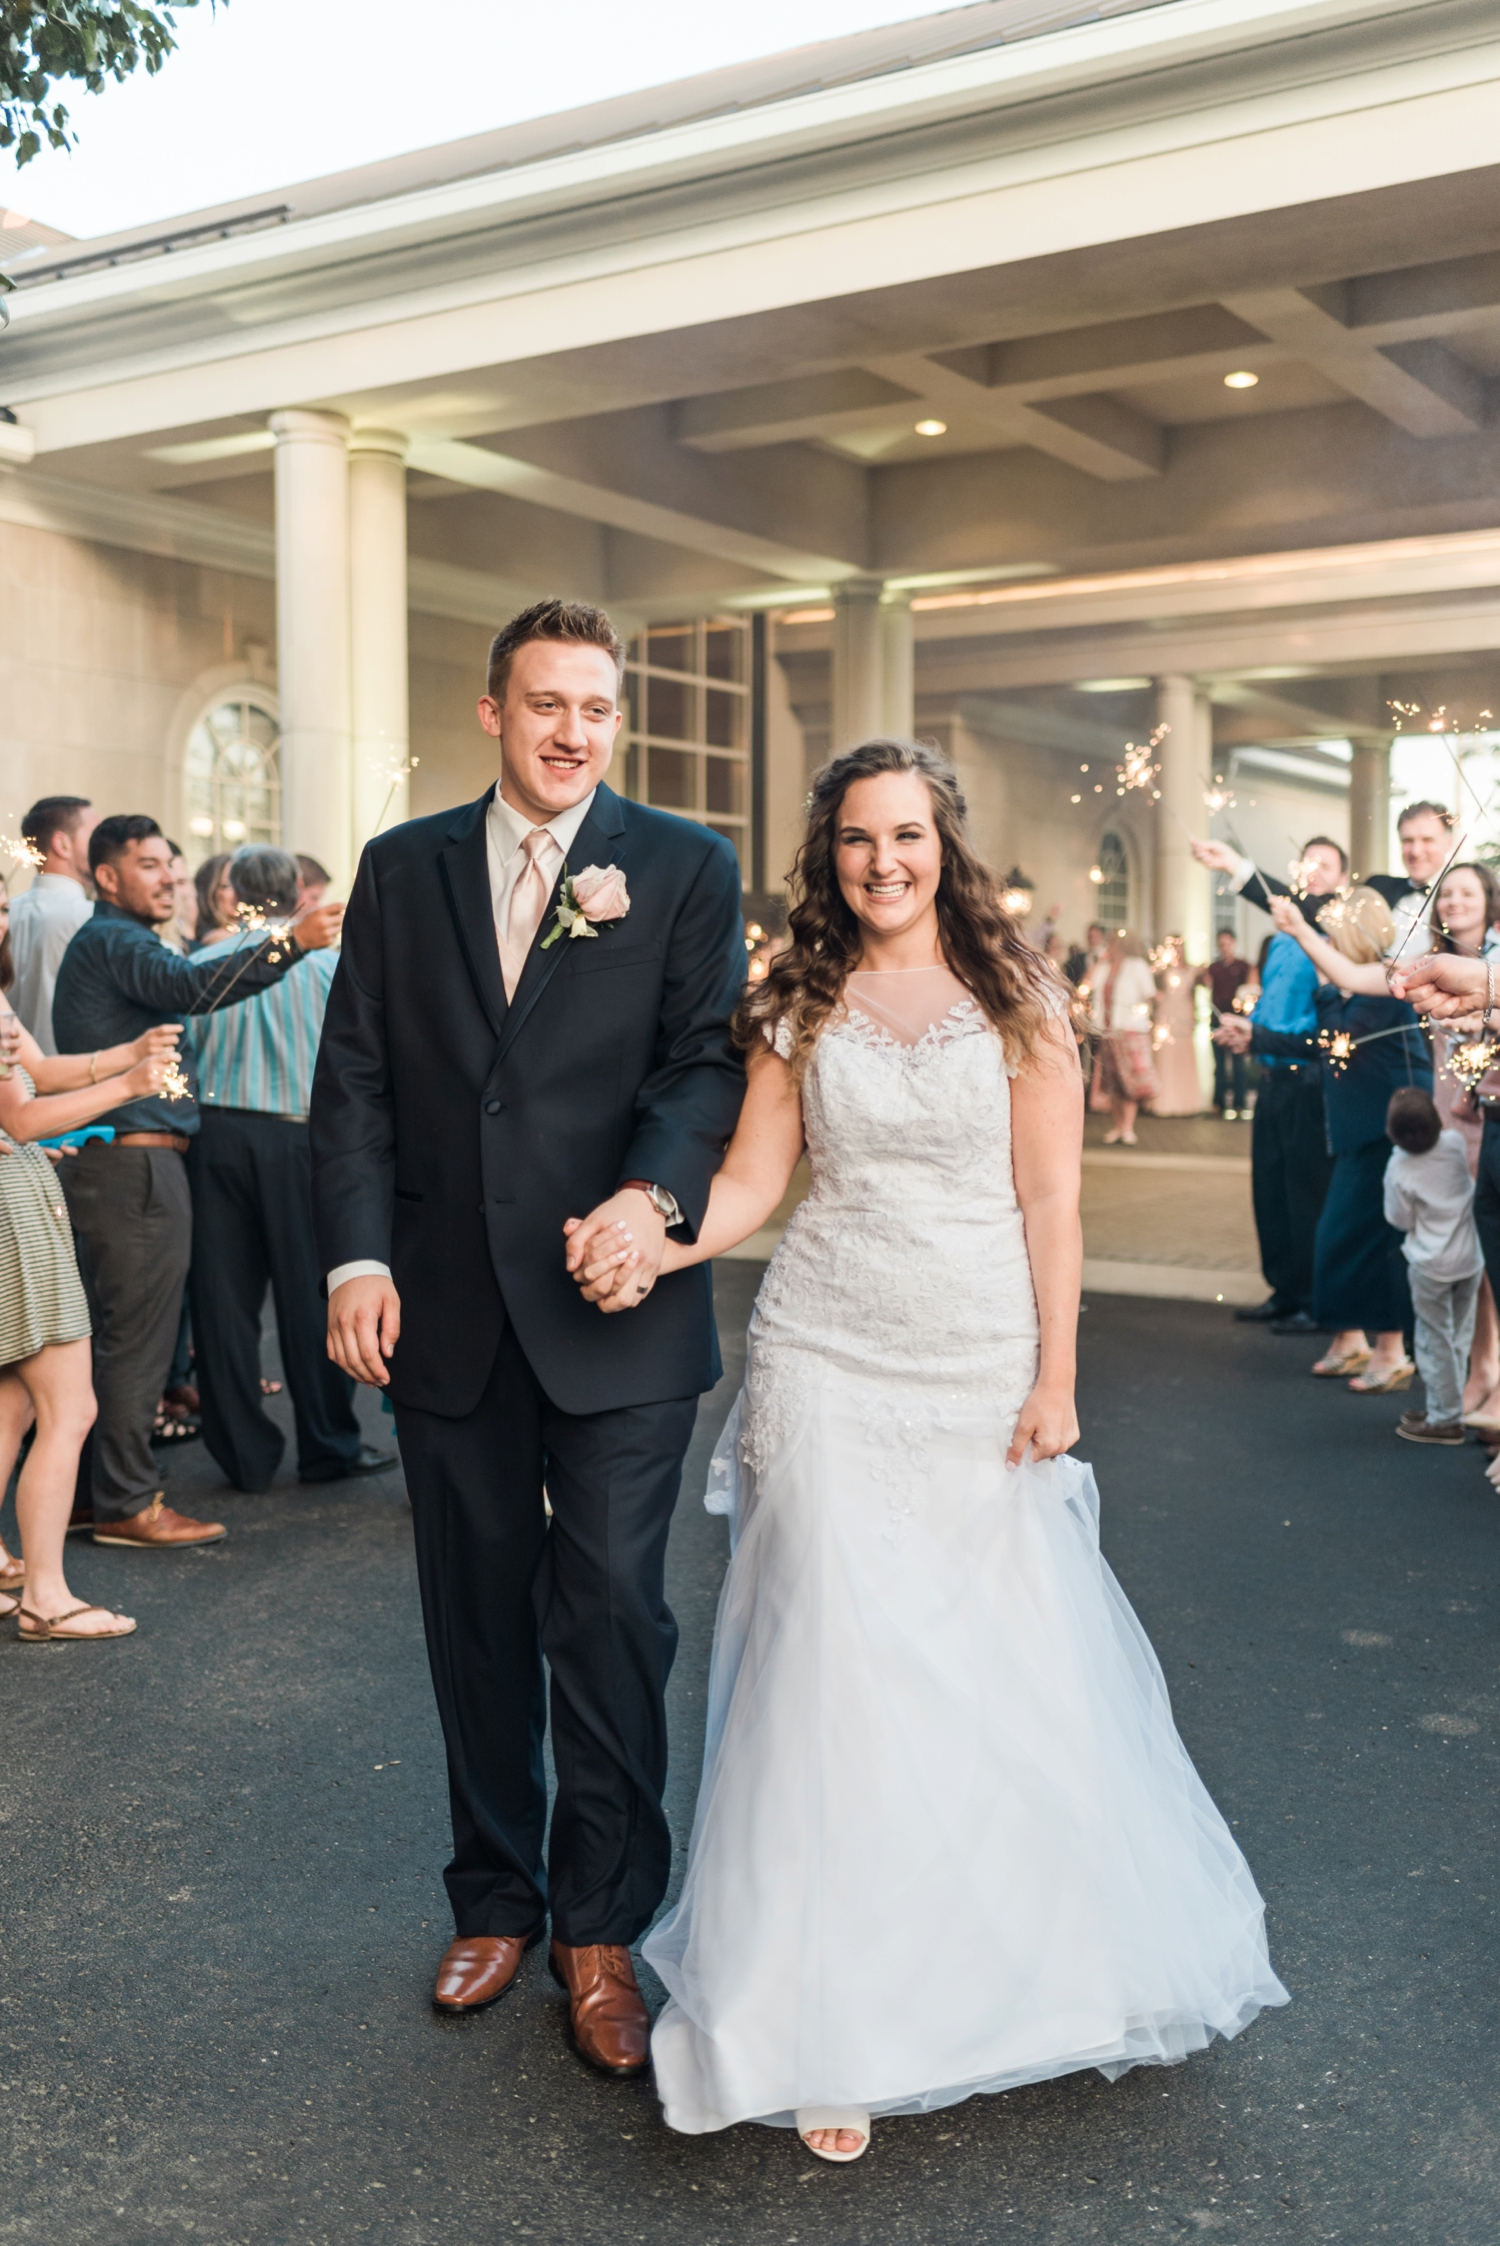 Community_Life_Center_Indianapolis_Indiana_Wedding_Photographer_Chloe_Luka_Photography_7004.jpg